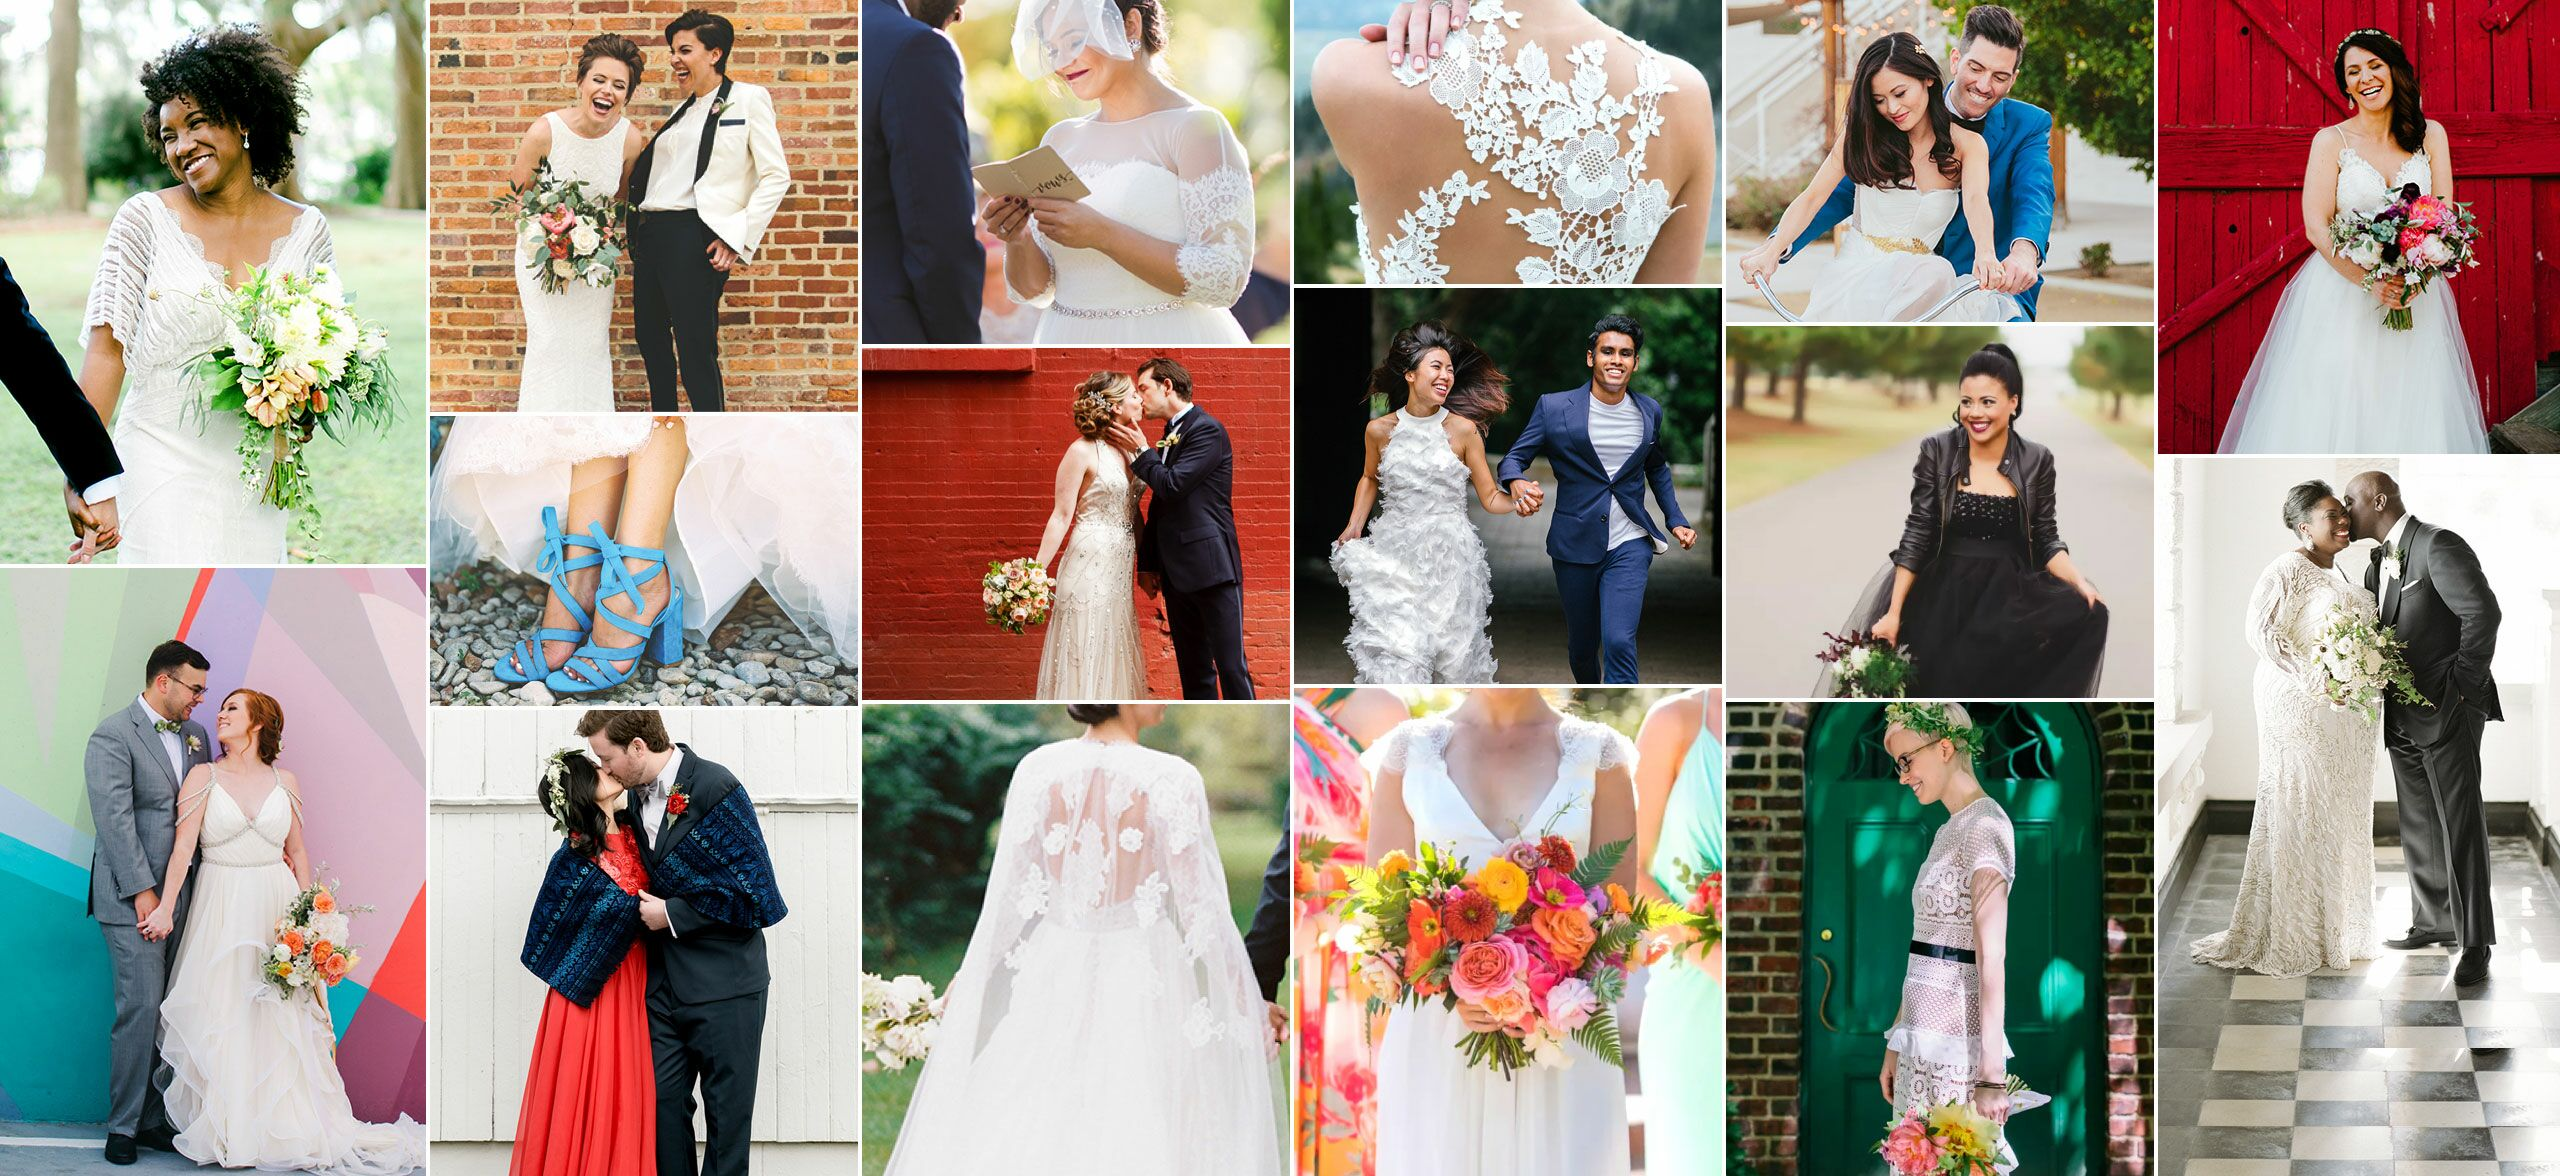 Wedding Dress Styles - Wedding Dress Quiz - The Knot